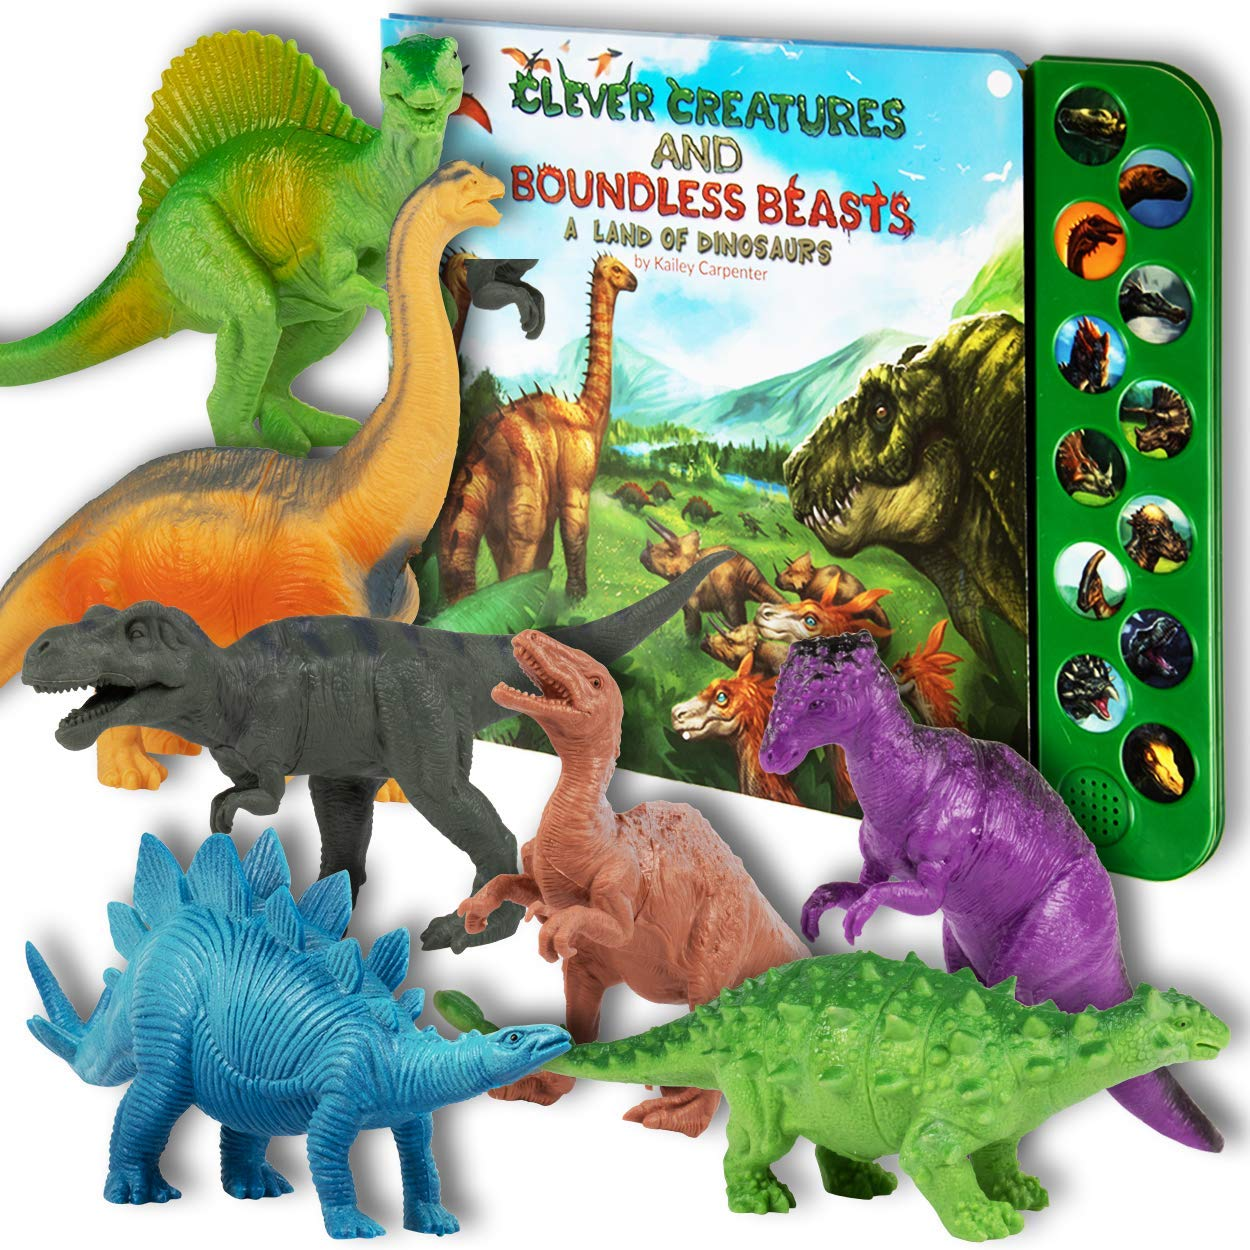 Li'l Gen Dinosaur Toys for Boys and Girls 3 Years Old & Up - Realistic Looking 7'' Dinosaurs, Pack of 12 Animal Dinosaur Figures with Dinosaur Sound Book (Dinosaur Set with Sound Book)